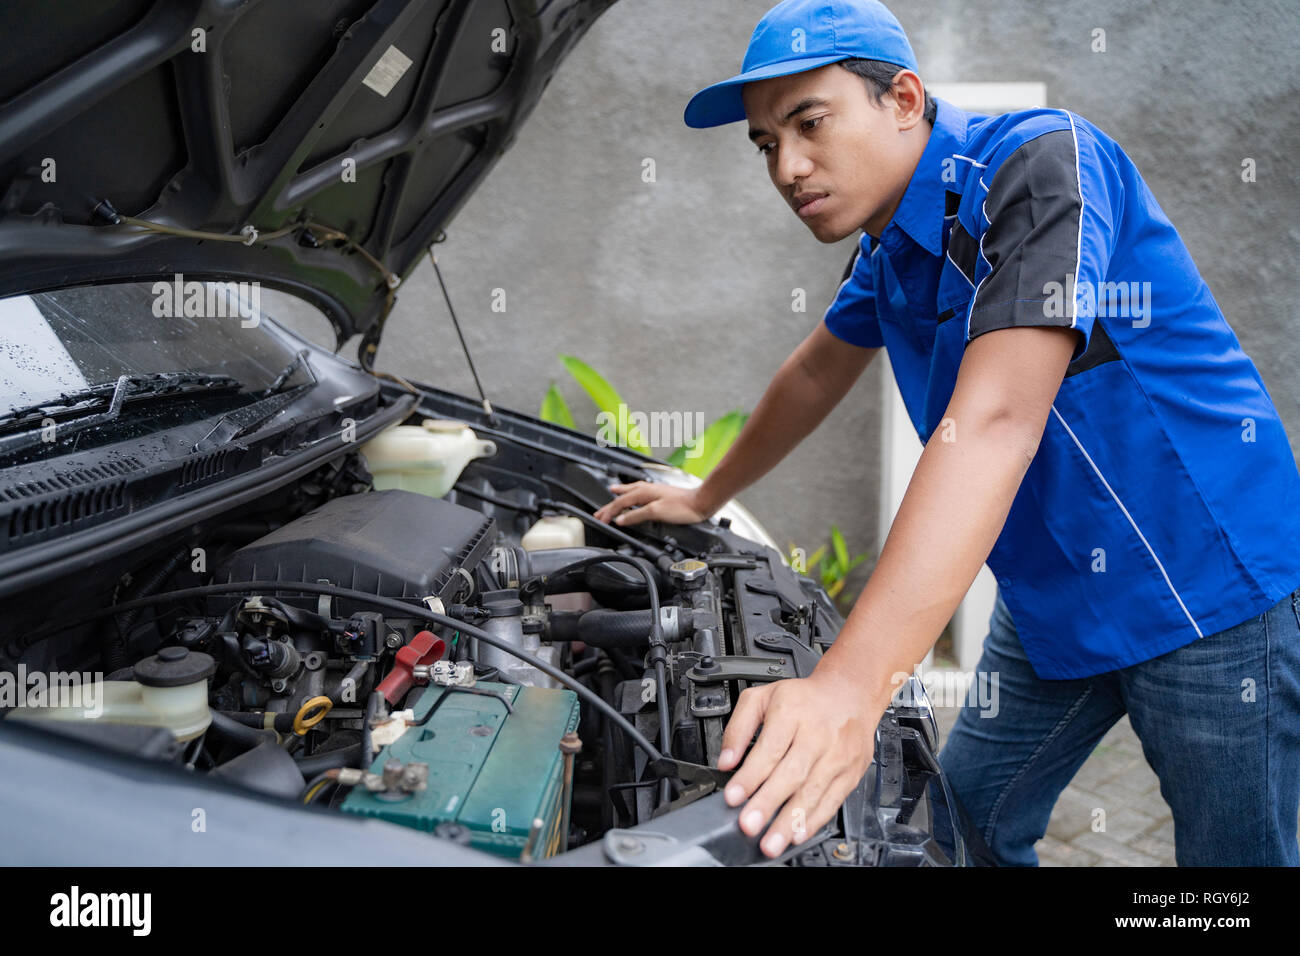 blue uniform car engineer worker looking into car's engine - Stock Image